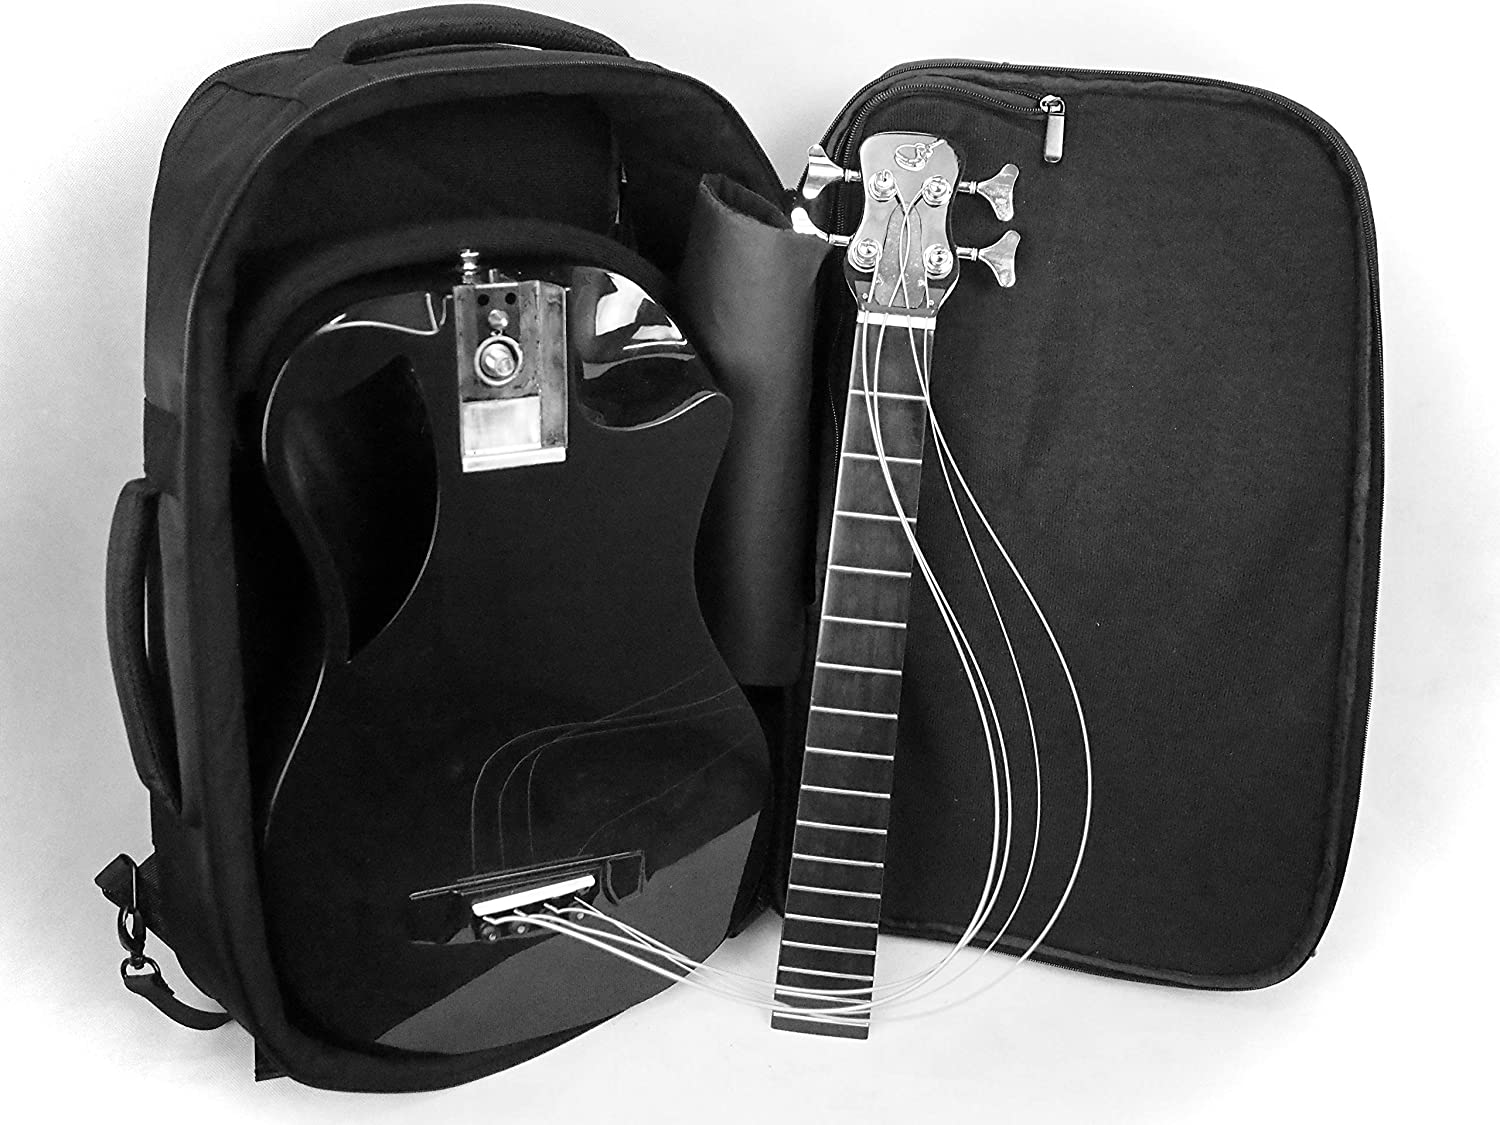 Journey Instruments Carbon Fiber Collapsible Acoustic Travel Bass with Pickup and Custom Travel Case - OB660